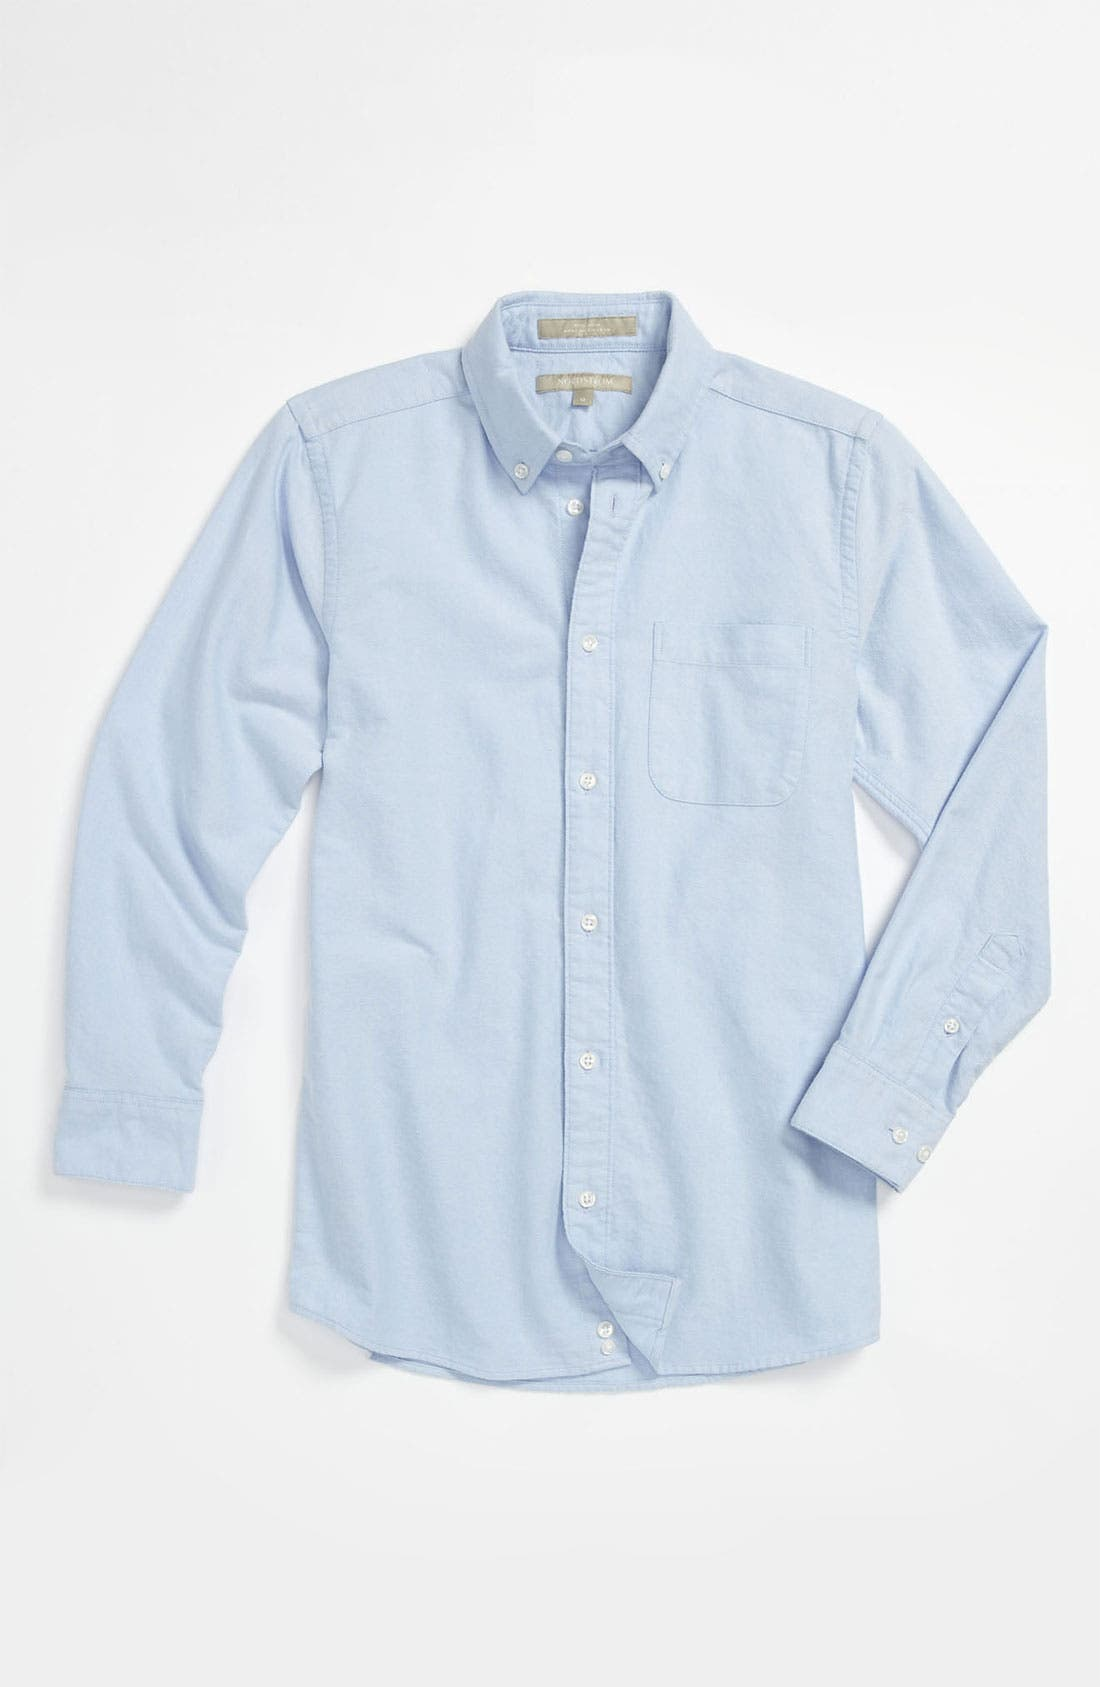 Main Image - Nordstrom 'Michael' Woven Oxford Shirt (Big Boys)